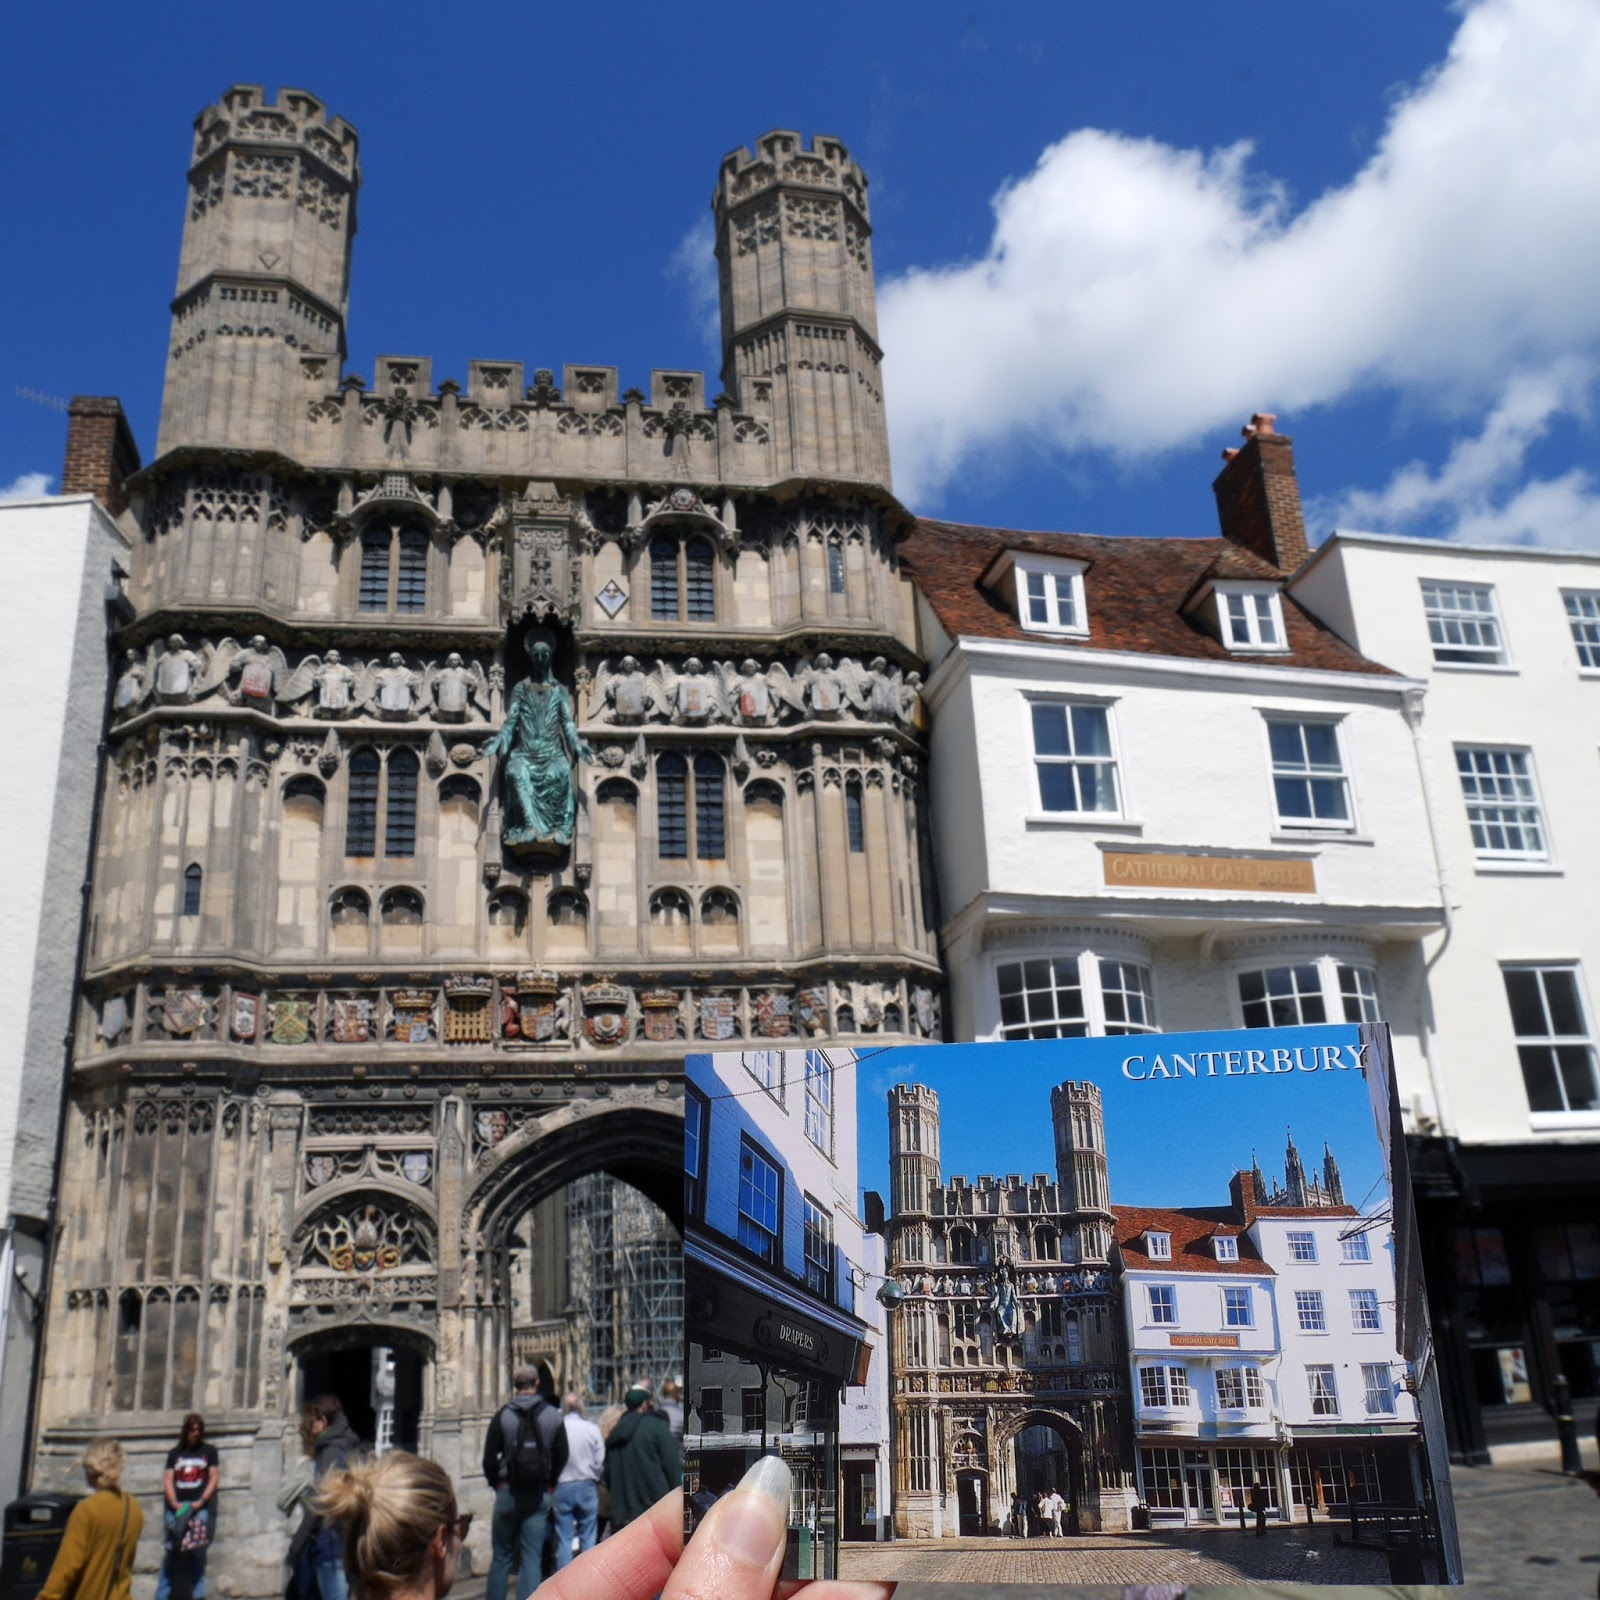 The Cathedral entrance on Mercery Lane in Canterbury, Kent